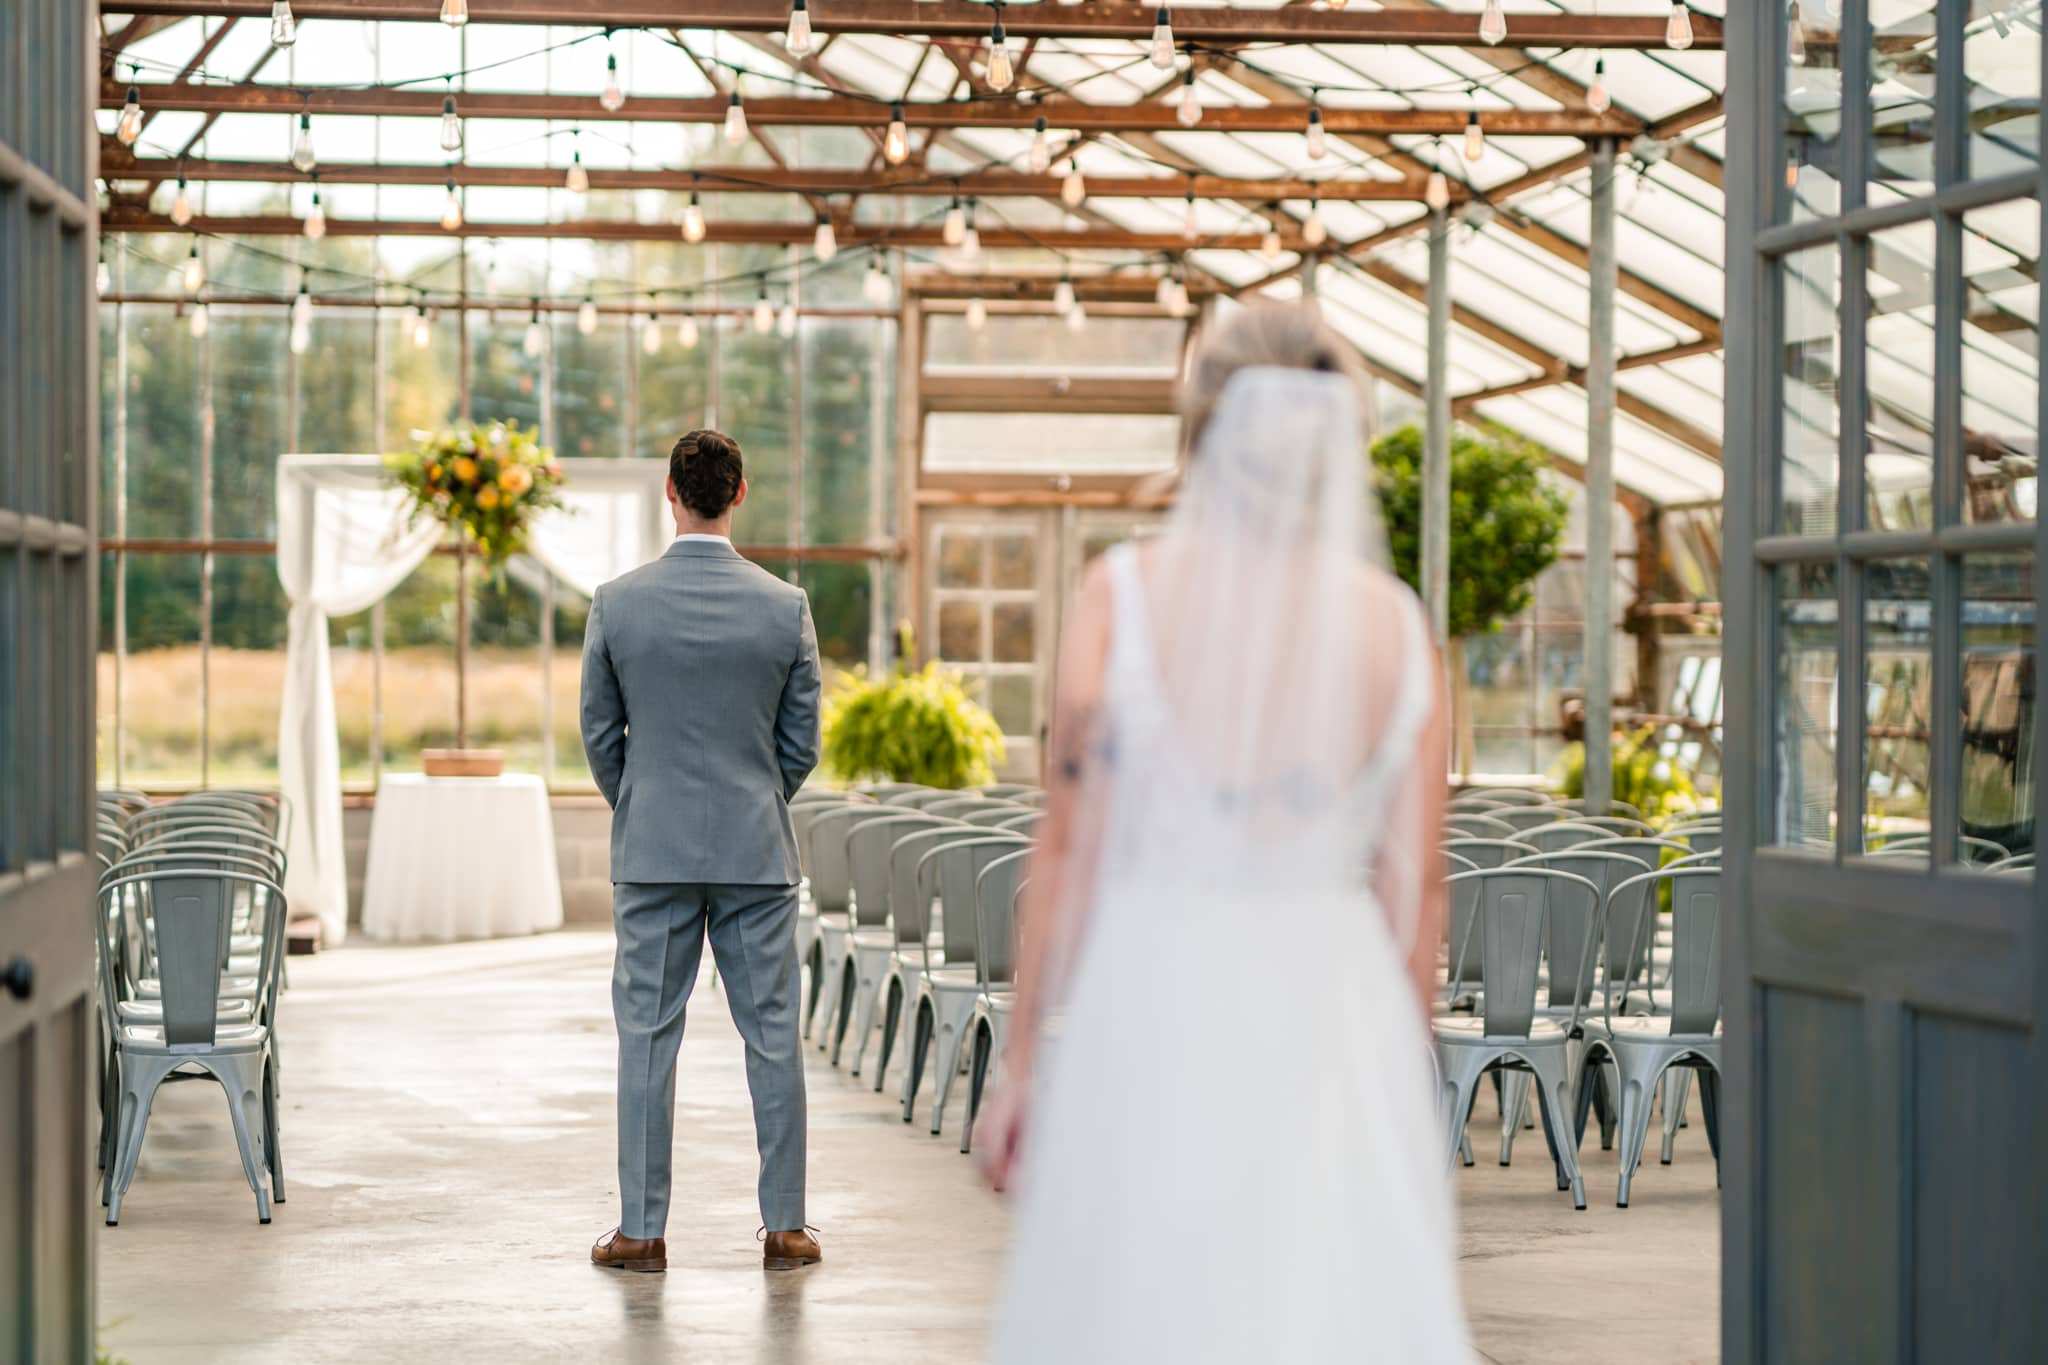 Bride walking to see groom for the first time at modern greenhouse wedding